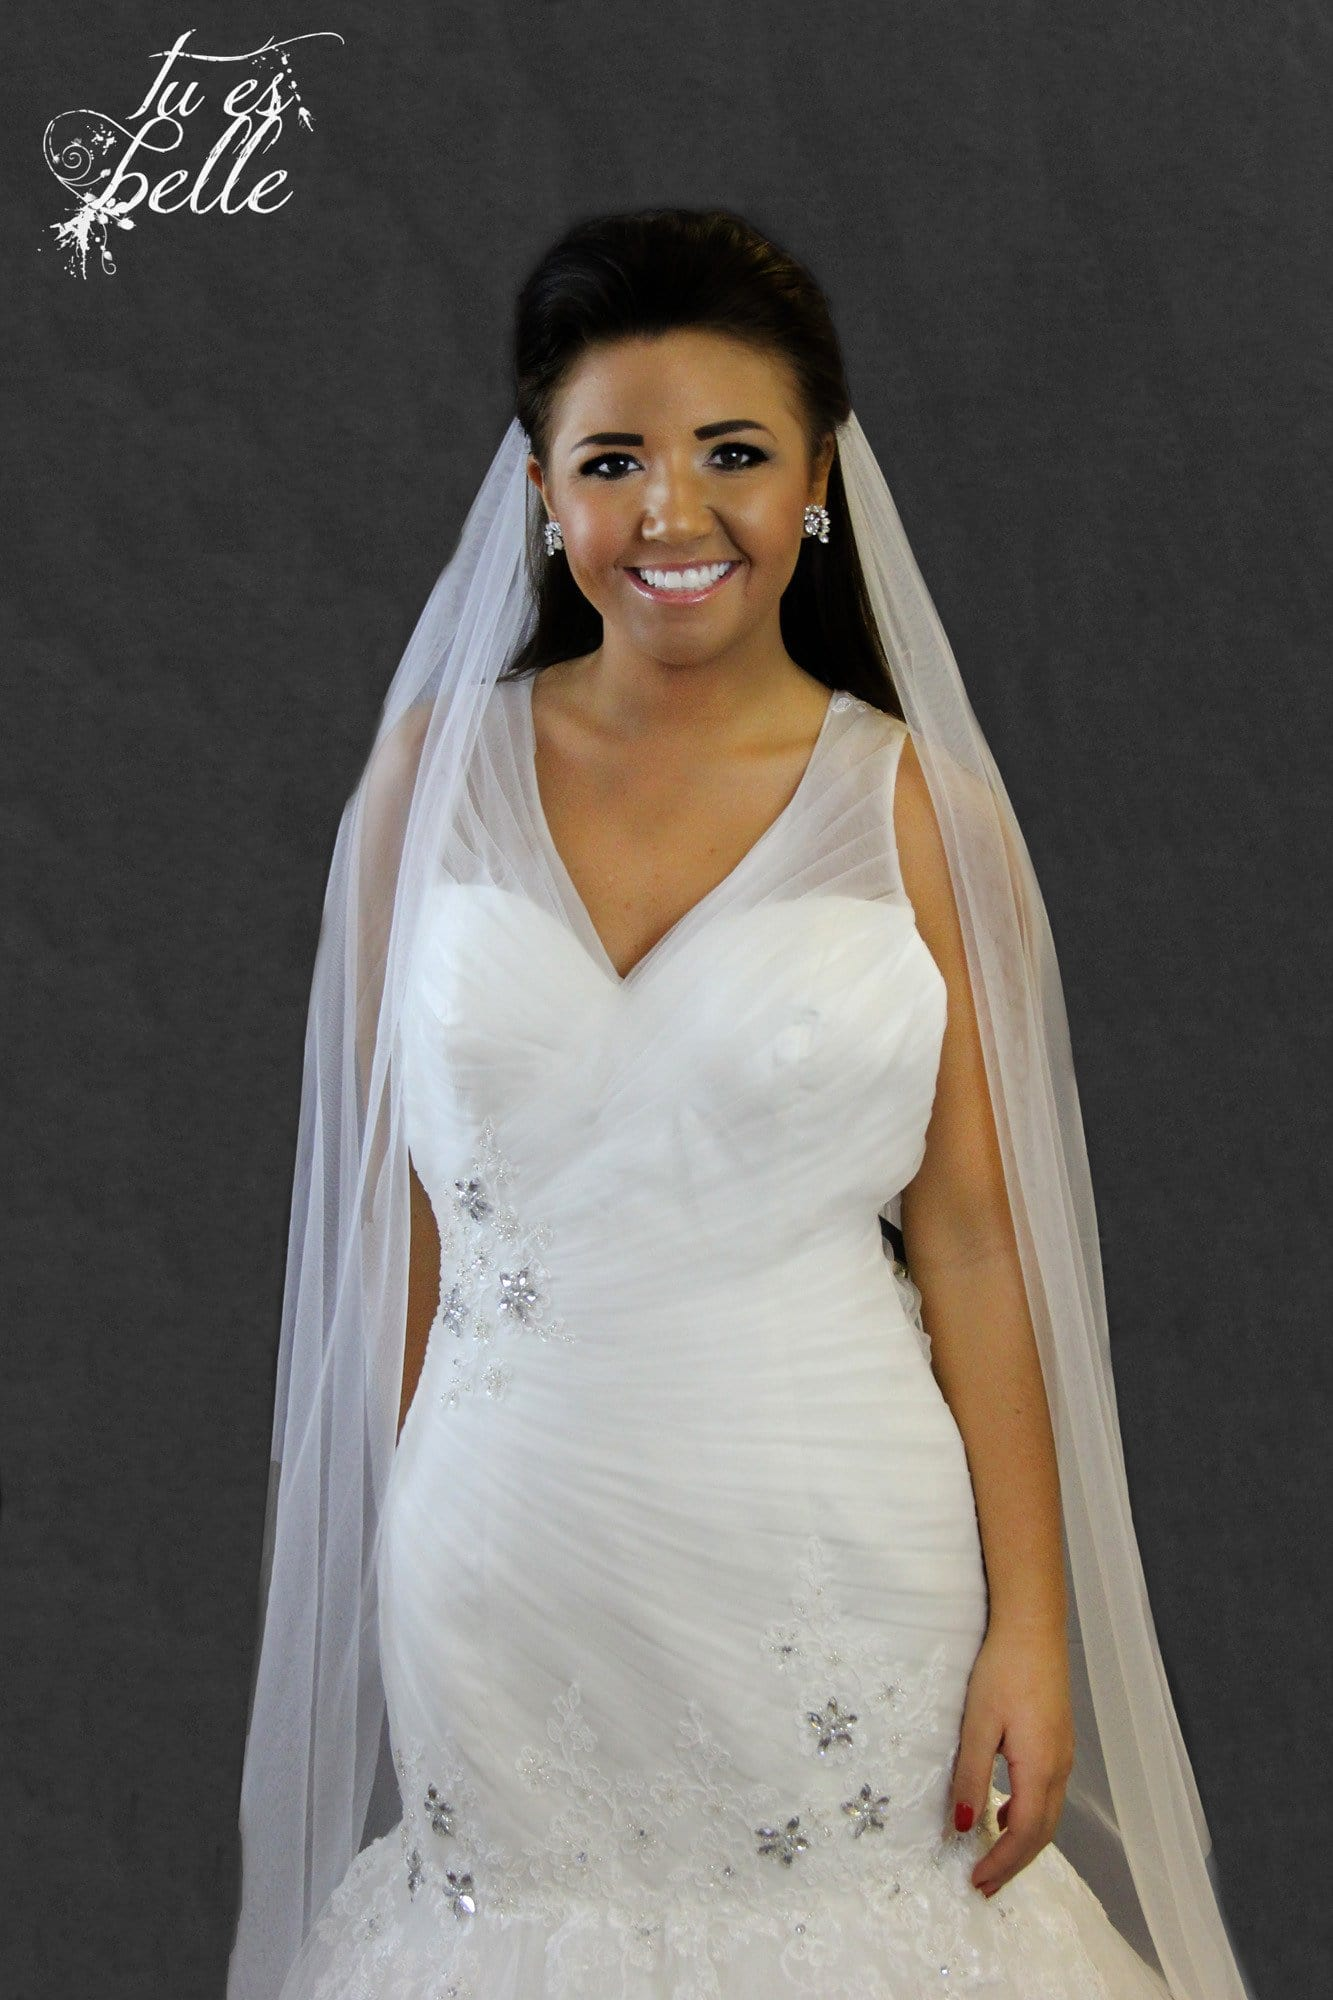 Bonita-One Tier Cathedral Length Cut Edge Veil - That Special Day Bridal Warehouse